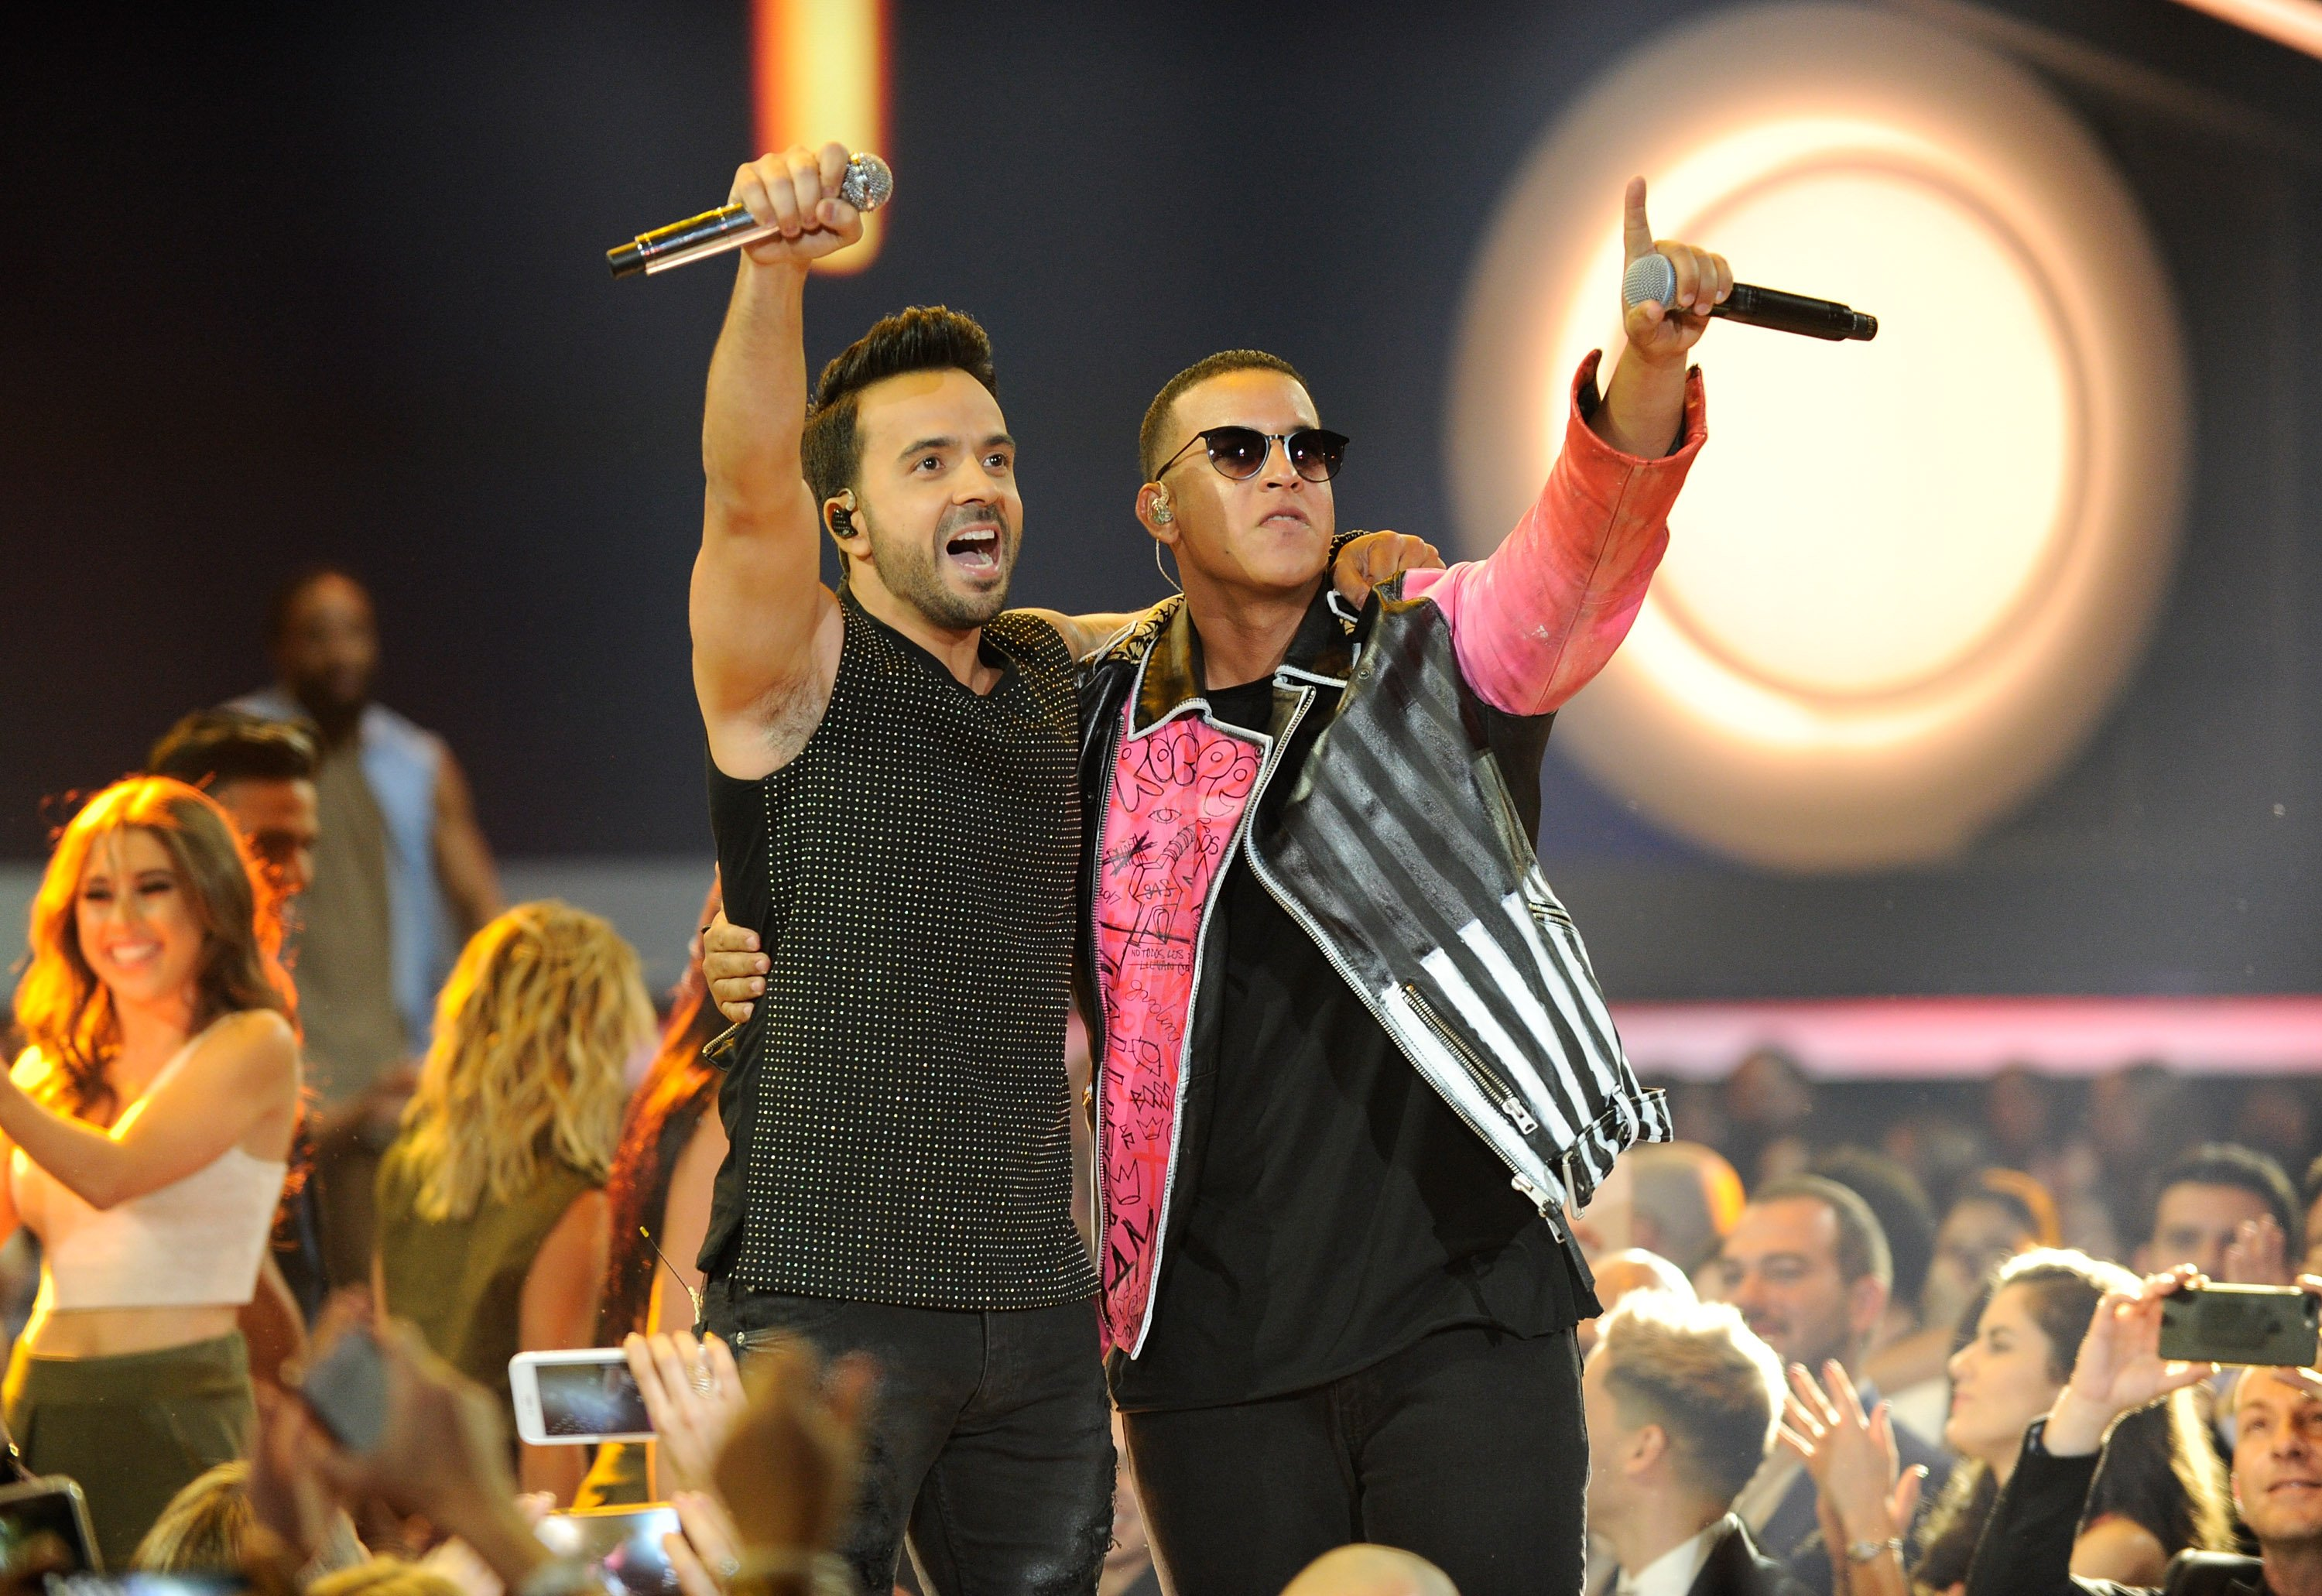 Luis Fonsi and Daddy Yankee perform onstage at the Billboard Latin Music Awards at Watsco Center on April 27, 2017 in Coral Gables, Fla.